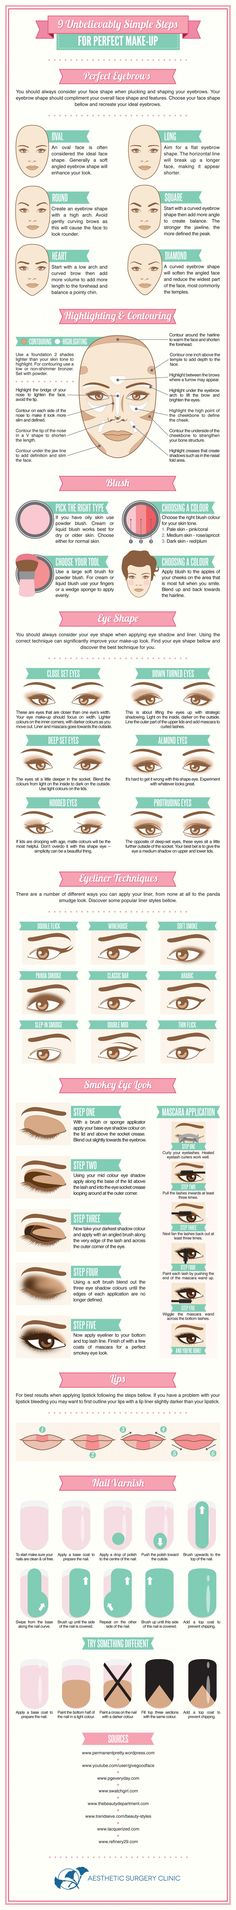 9-unbelievably-simple-steps-for-perfect-make-up-visual.ly-1399221919n8k4g.jpg 1500×12140 pixels